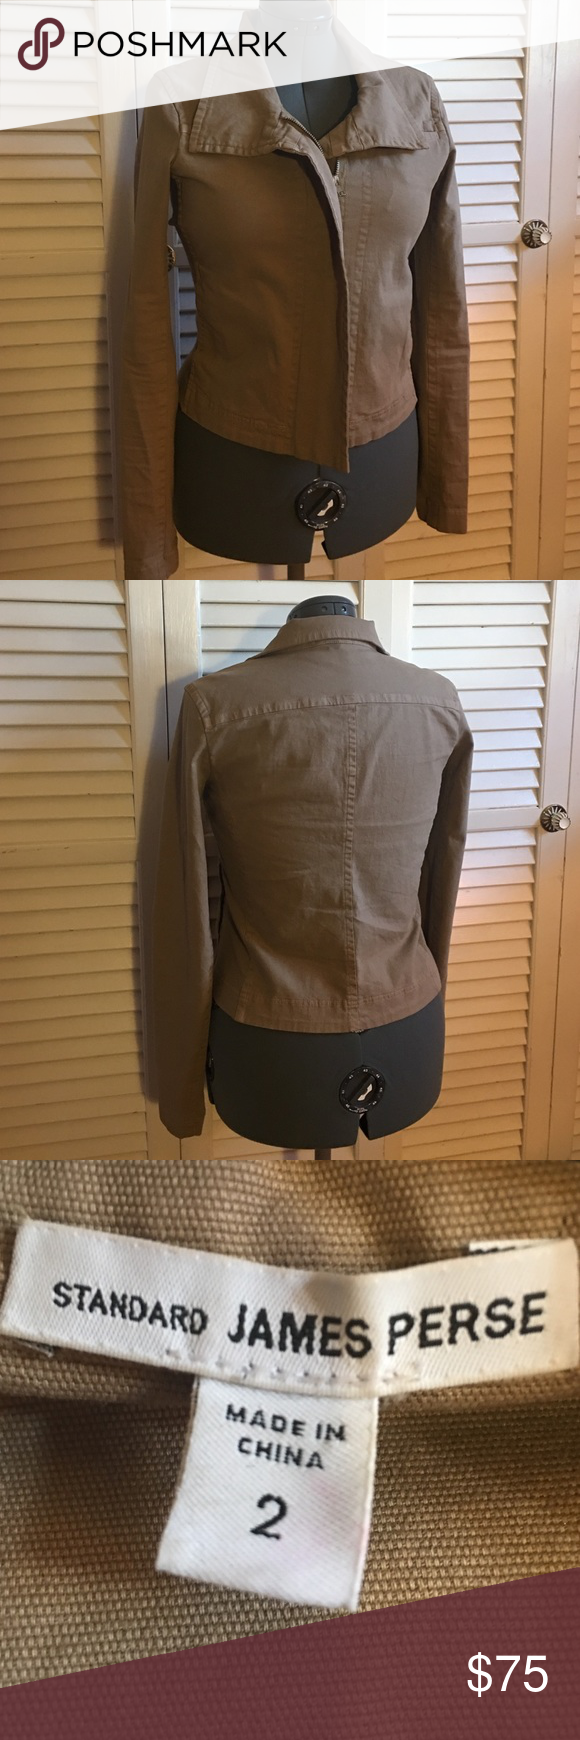 "James Perse Asymmetrical Zippered Moto Jacket Standard James Perse Asymmetrical Zippered Moto jacket in Khaki. Size 2. Long sleeved, Zippered moto jacket with flattering collar. In gently worn, preloved condition with no imperfections. Originally $325. I DO NOT MODEL LISTINGS, measurements approx. 21.5"" length, 25"" arm length, 17"" from armpit to armpit. Love the item but not the price? Please make offers using the offer button. 🚫POSH ONLY, NO TRADES OR COMMENT OFFERS🚫 James Perse Jackets…"